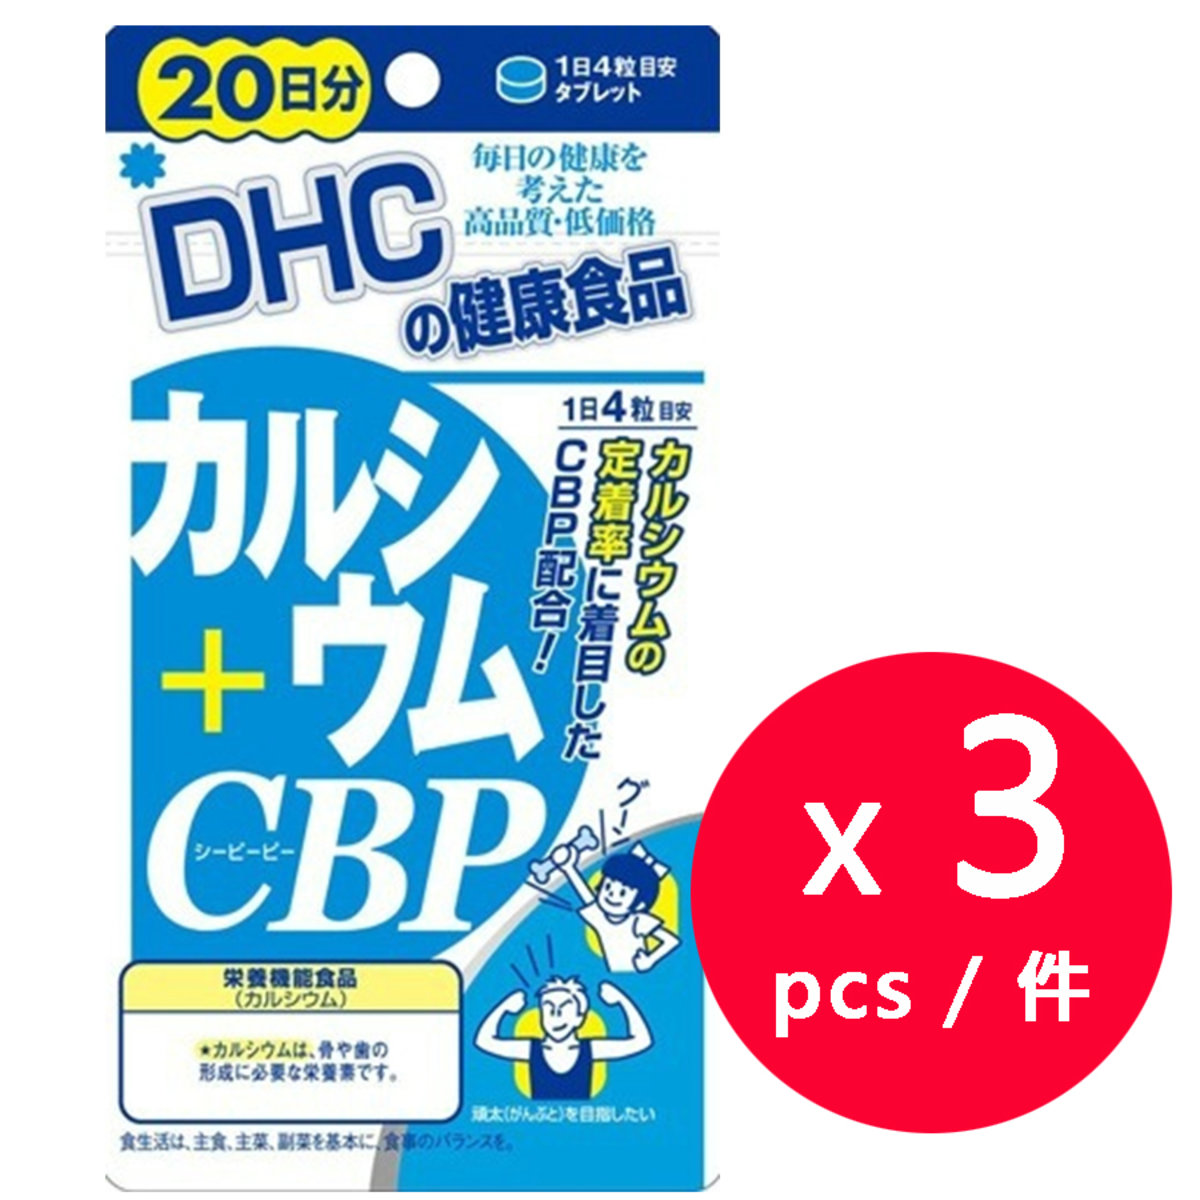 DHC Strengthen bone calcium + CBP supplement (20 days) 80 capsules x 3 packs (Parallel Import)